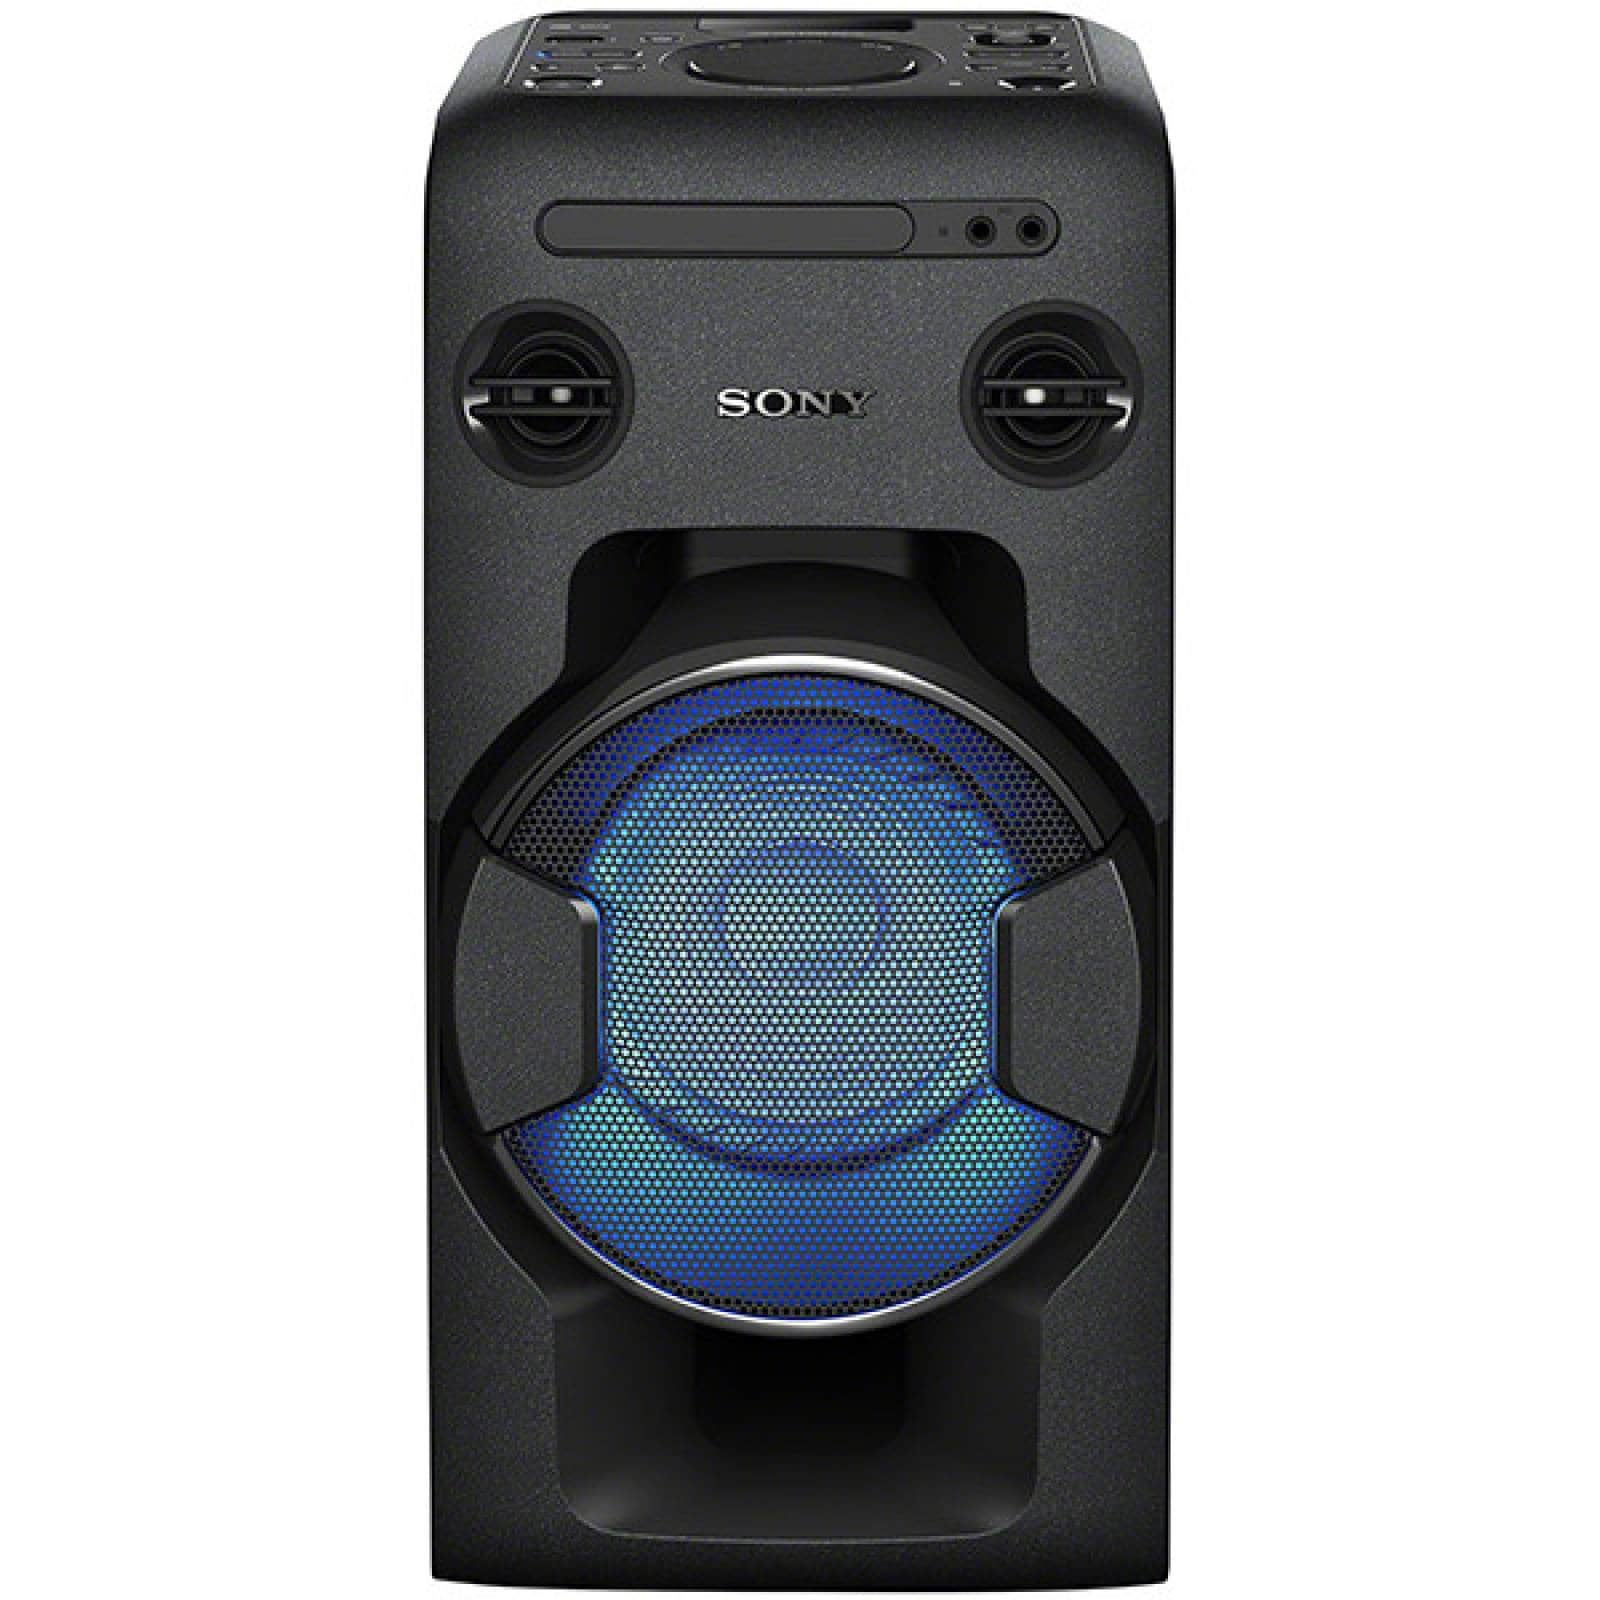 Bocina Minicomponente Bluetooth Fm Usb Cd Mp3 MHC-V11 Sony